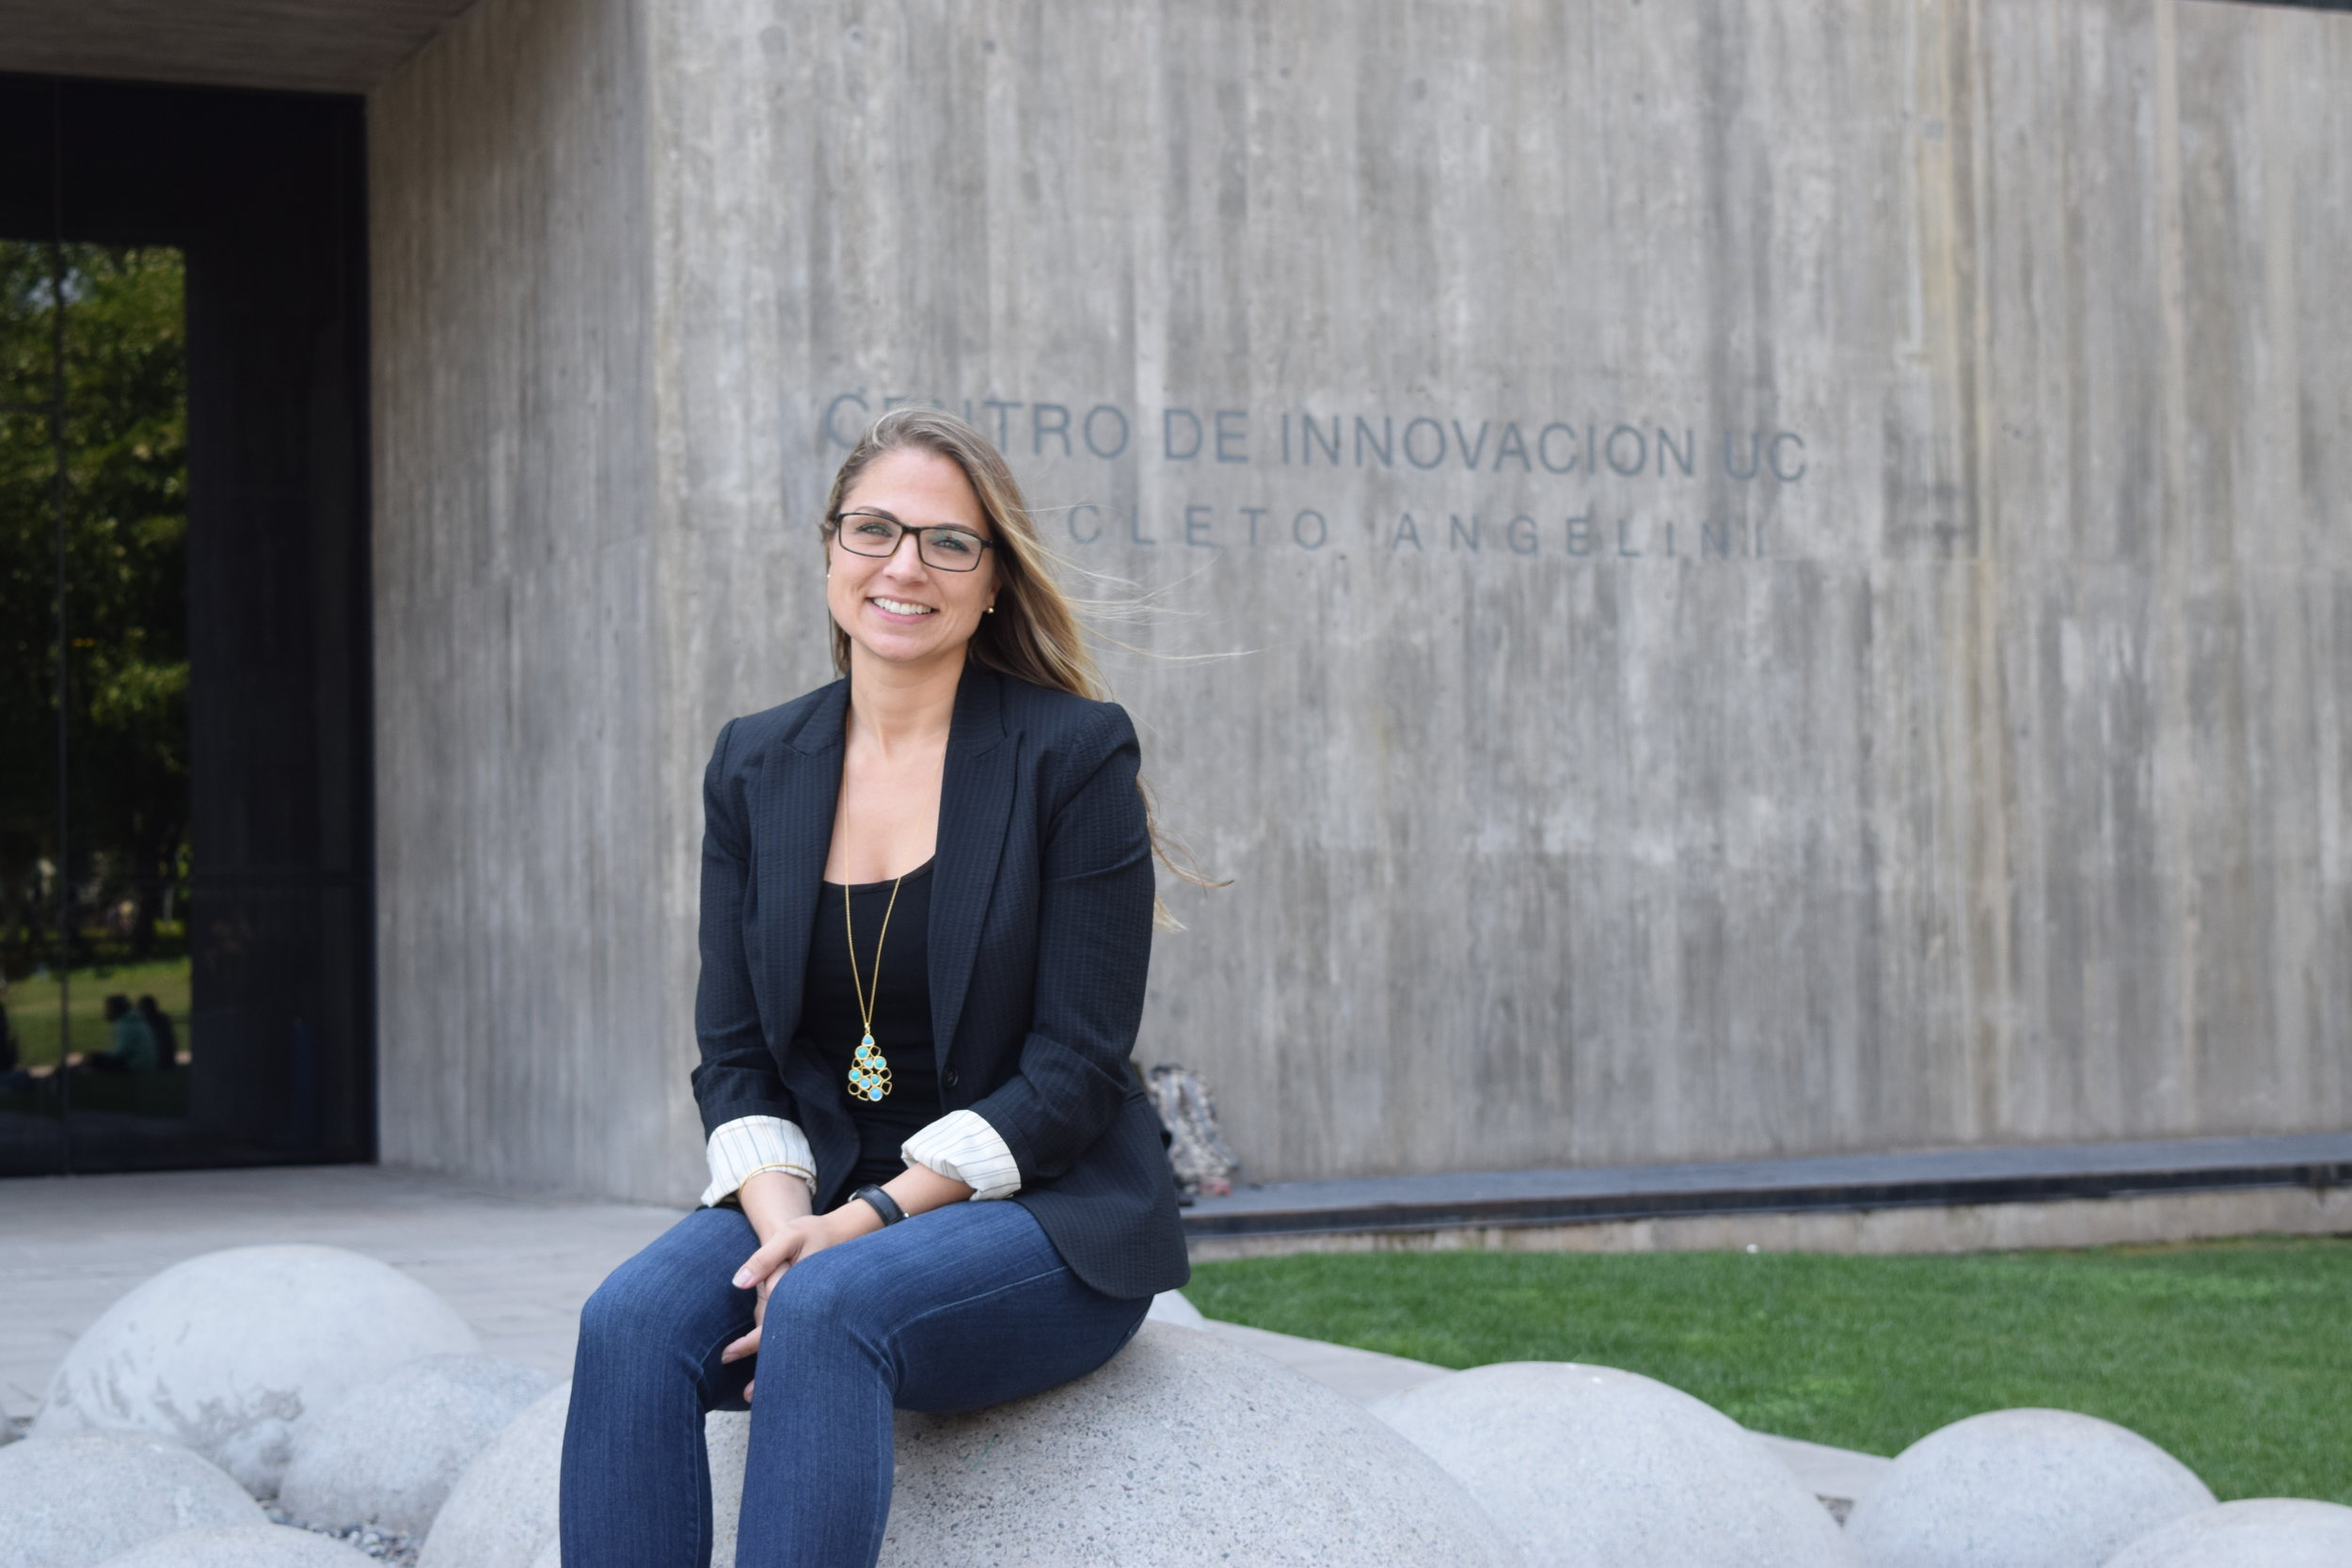 Jen at the Centro de Innovacion, where she was the Opening Keynote Speaker at the IteraXion Conference, Santiago Chile. 2017.